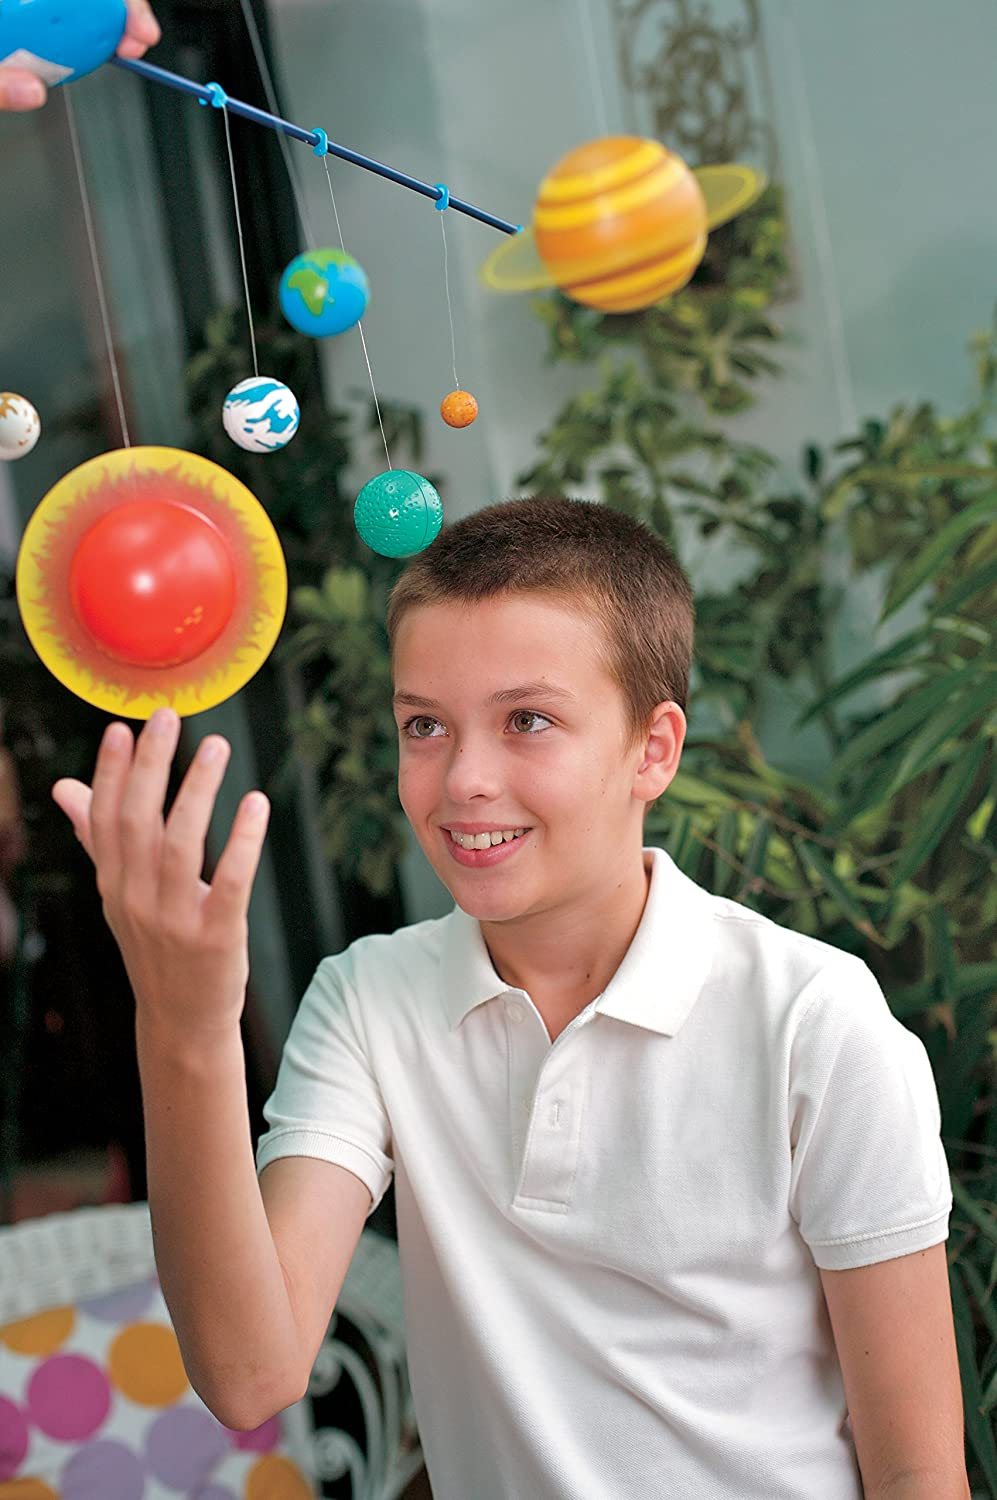 Hanging Solar System for Kids